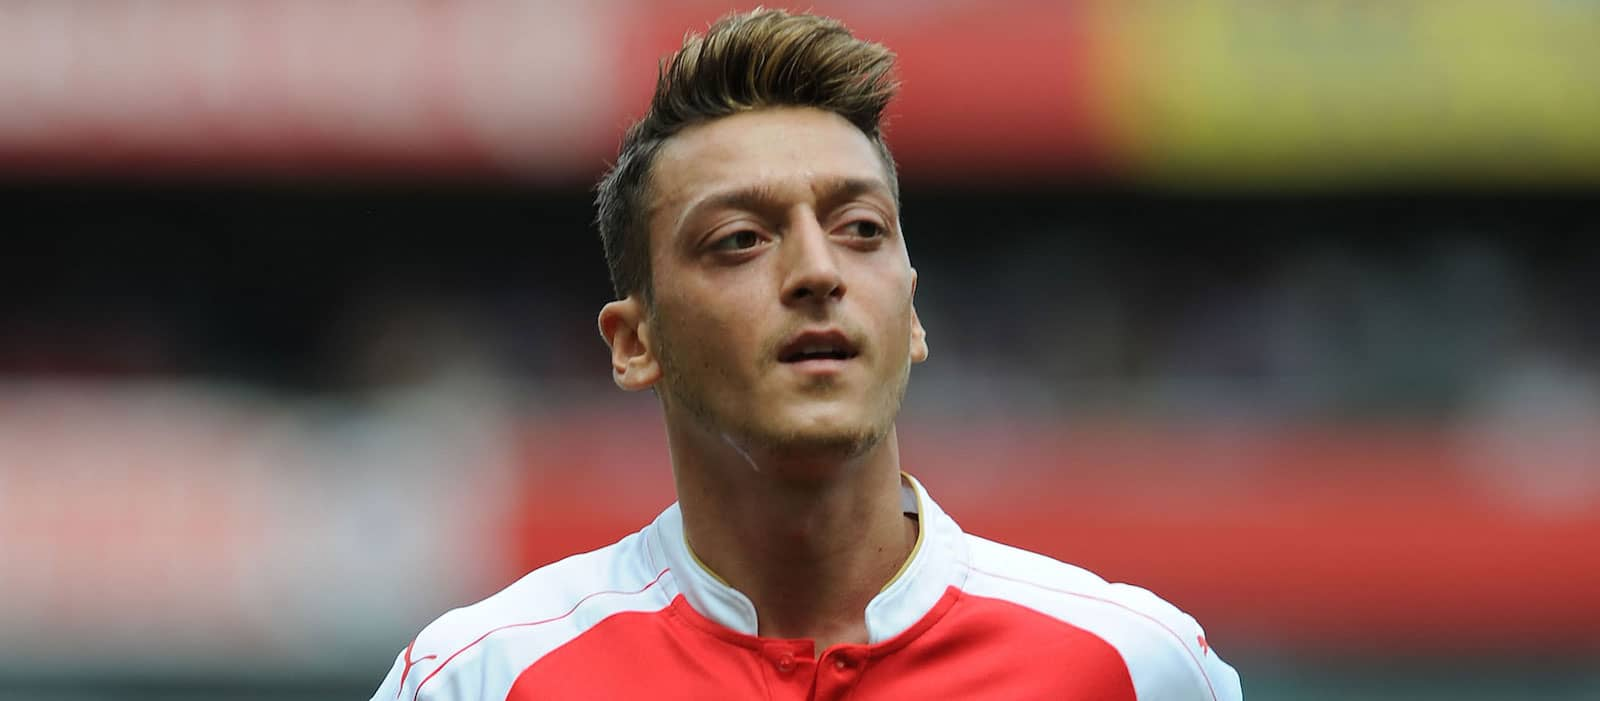 Manchester United could sign both Alexis Sanchez and Mesut Ozil before next season – report